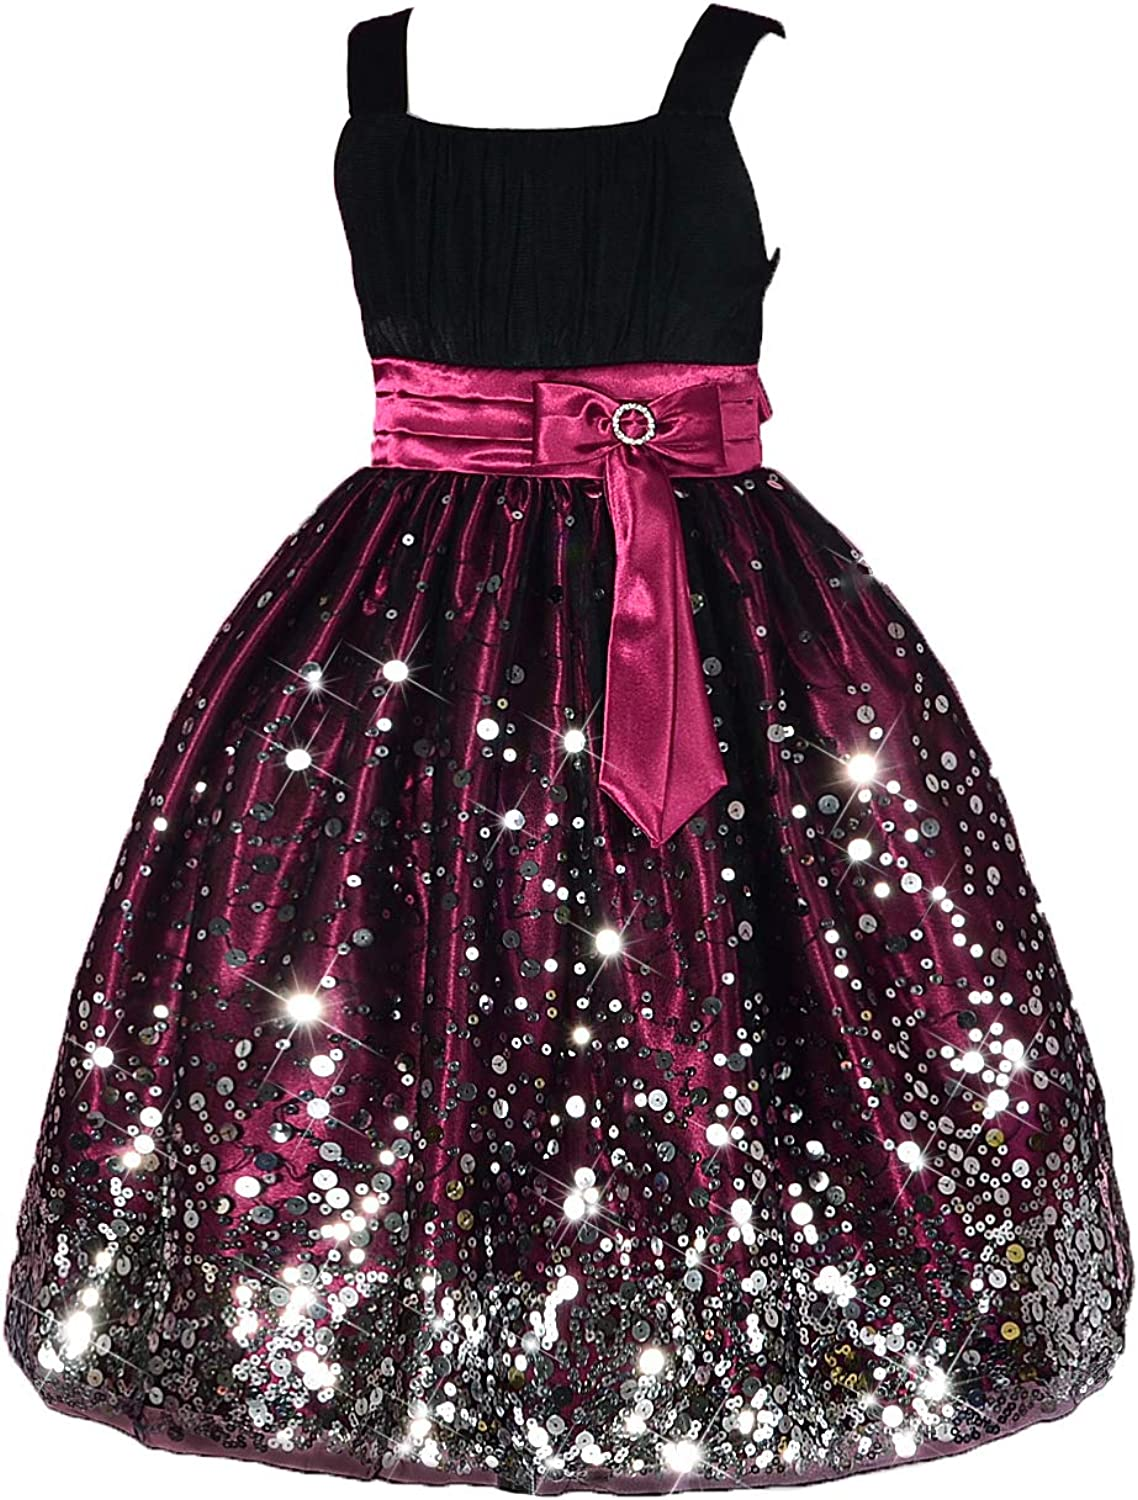 Dressy Daisy Girls' Sequined Pageant Dresses Occasion Birthday Party Prom Dress